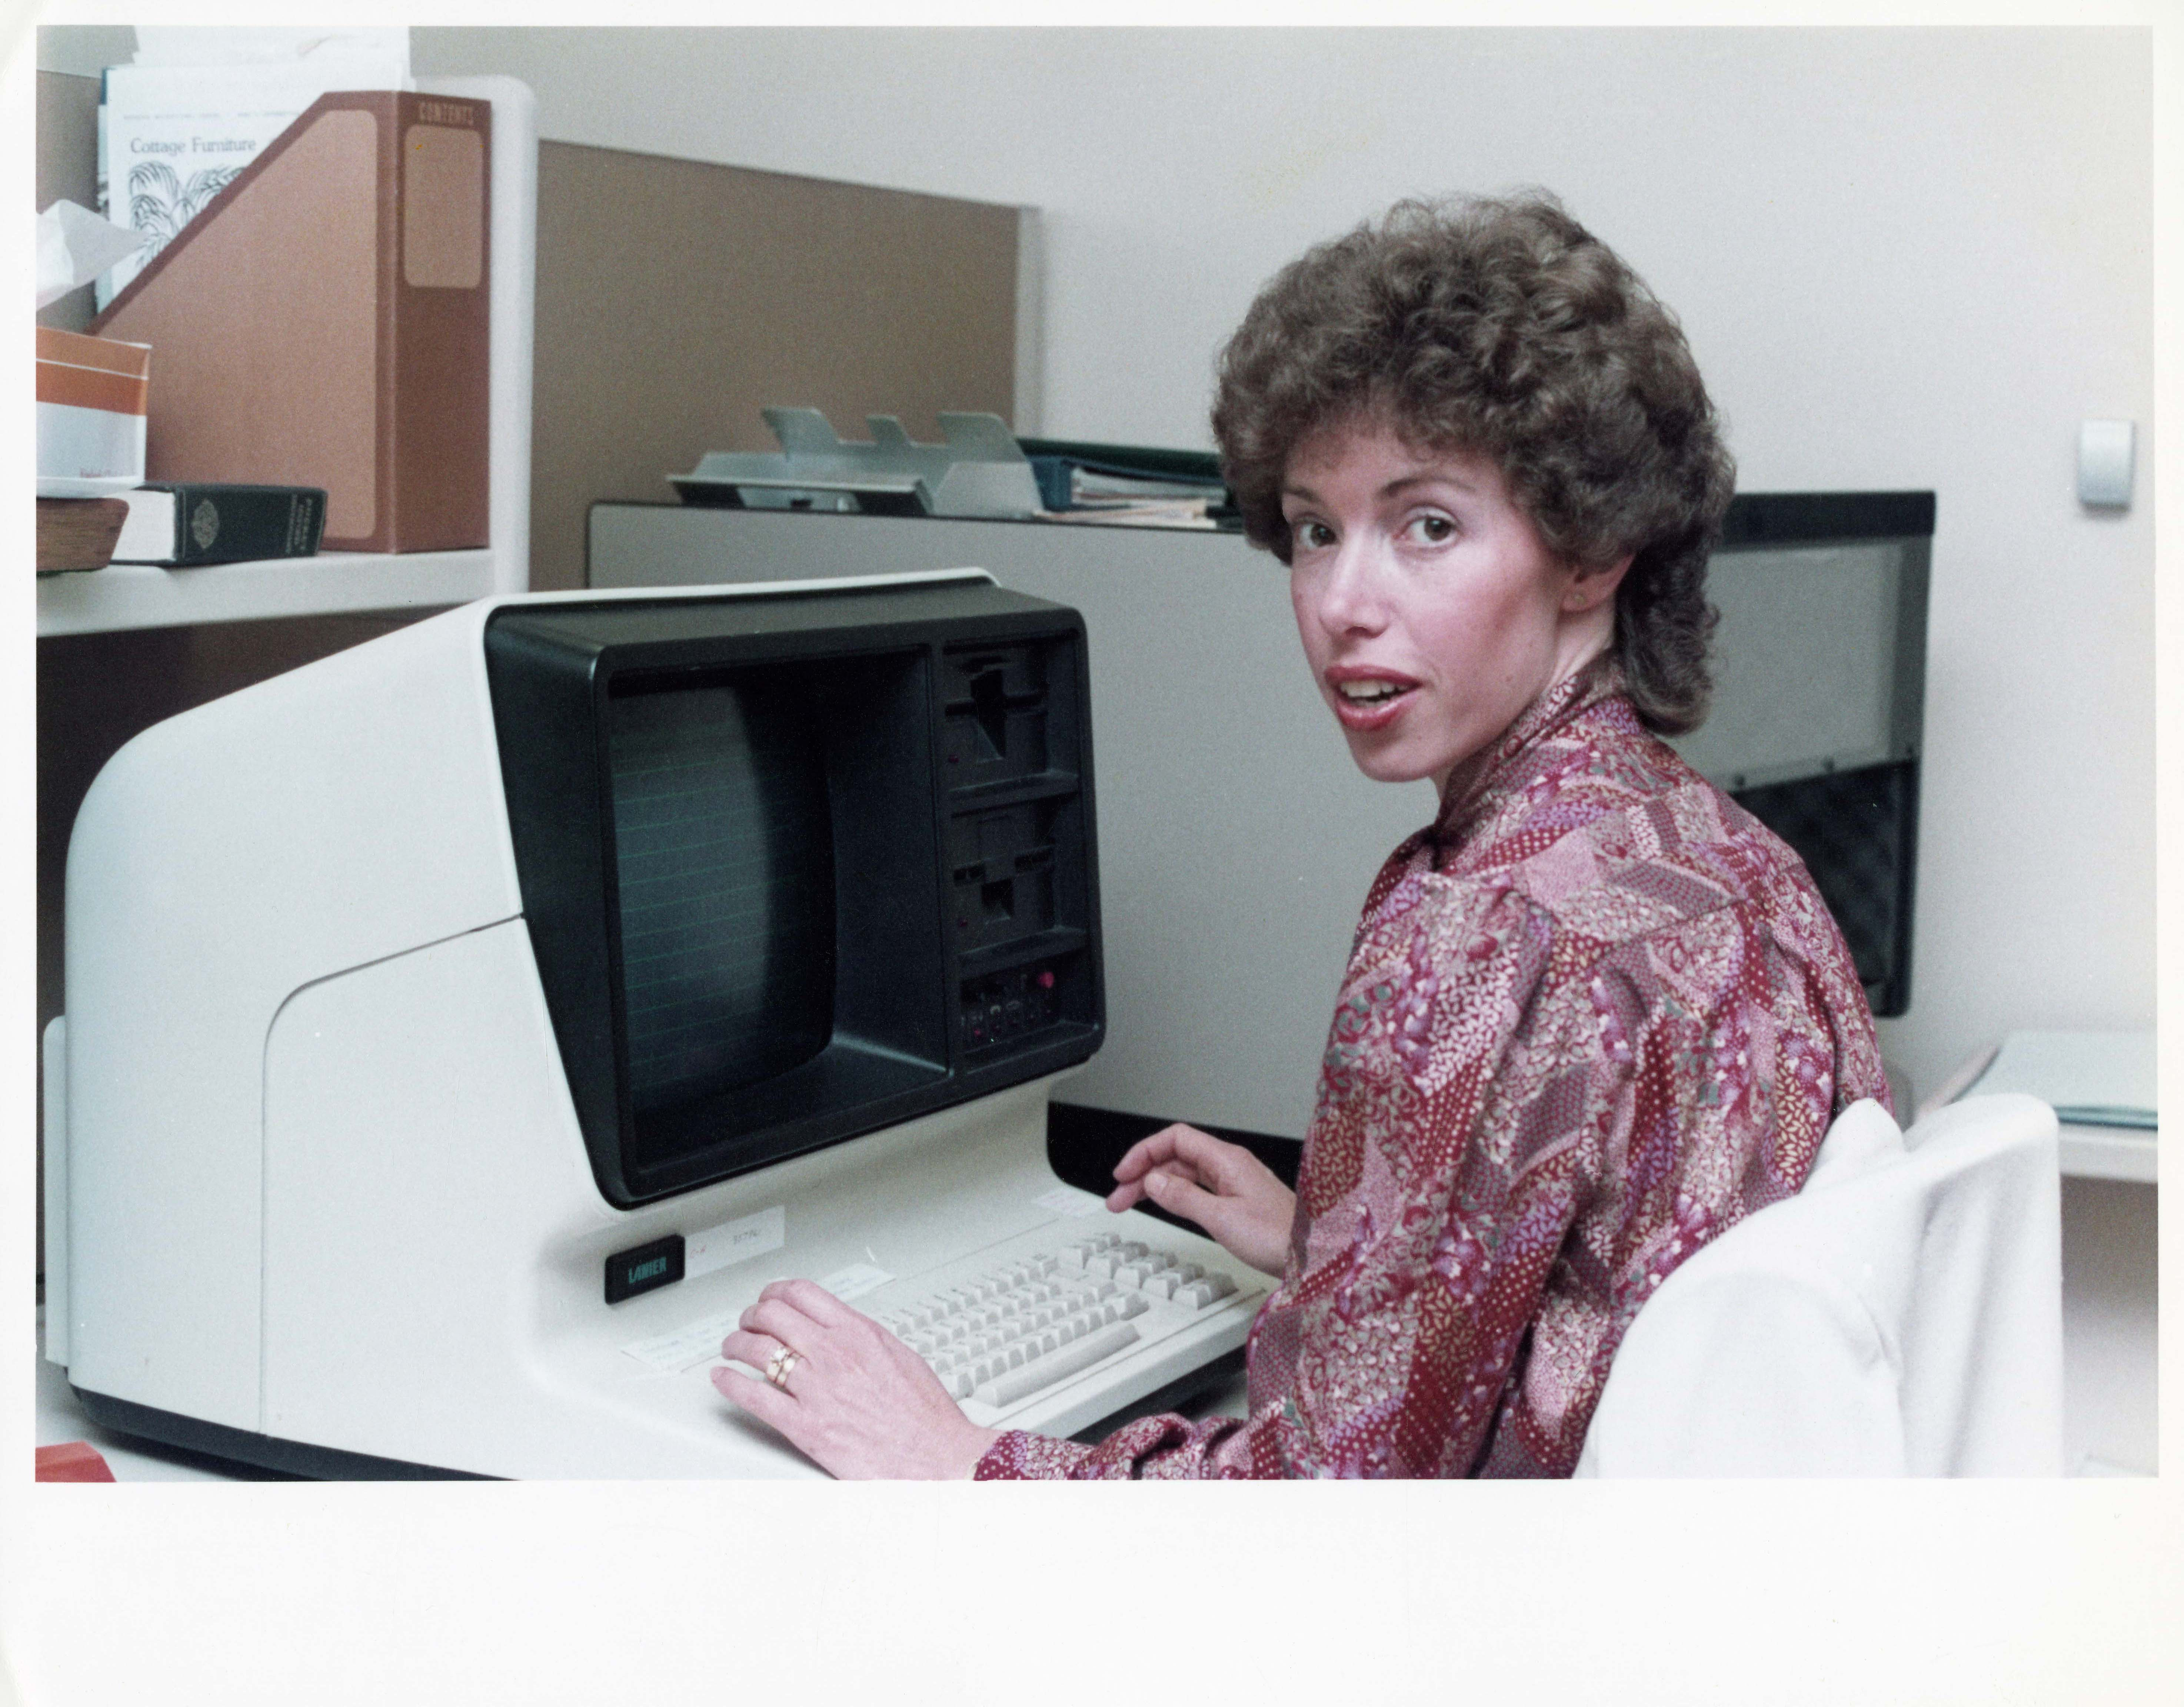 colour photo of a woman with an 80s perm typing at a large computer